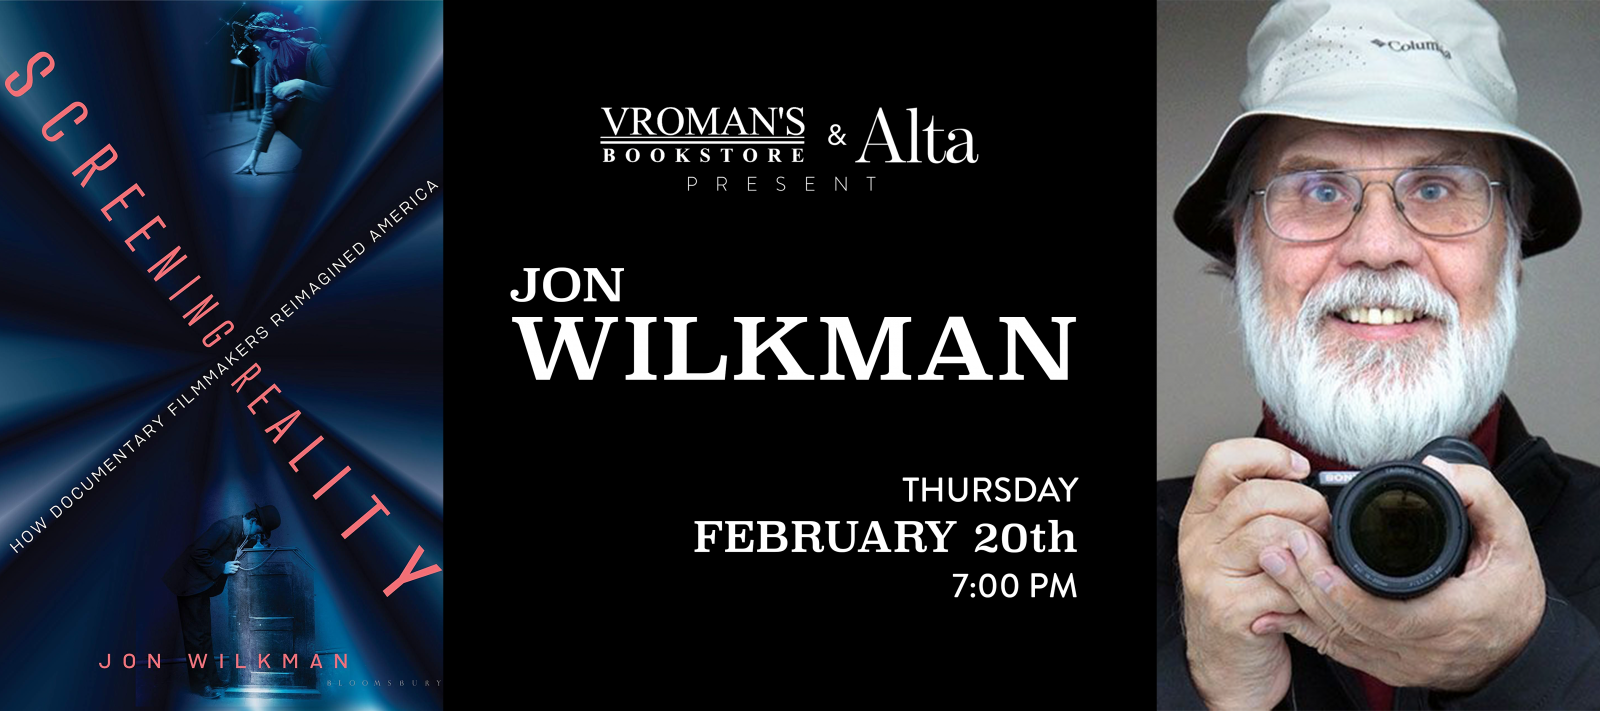 Jon Wilkman book signing Thursday, February 20, at 7pm